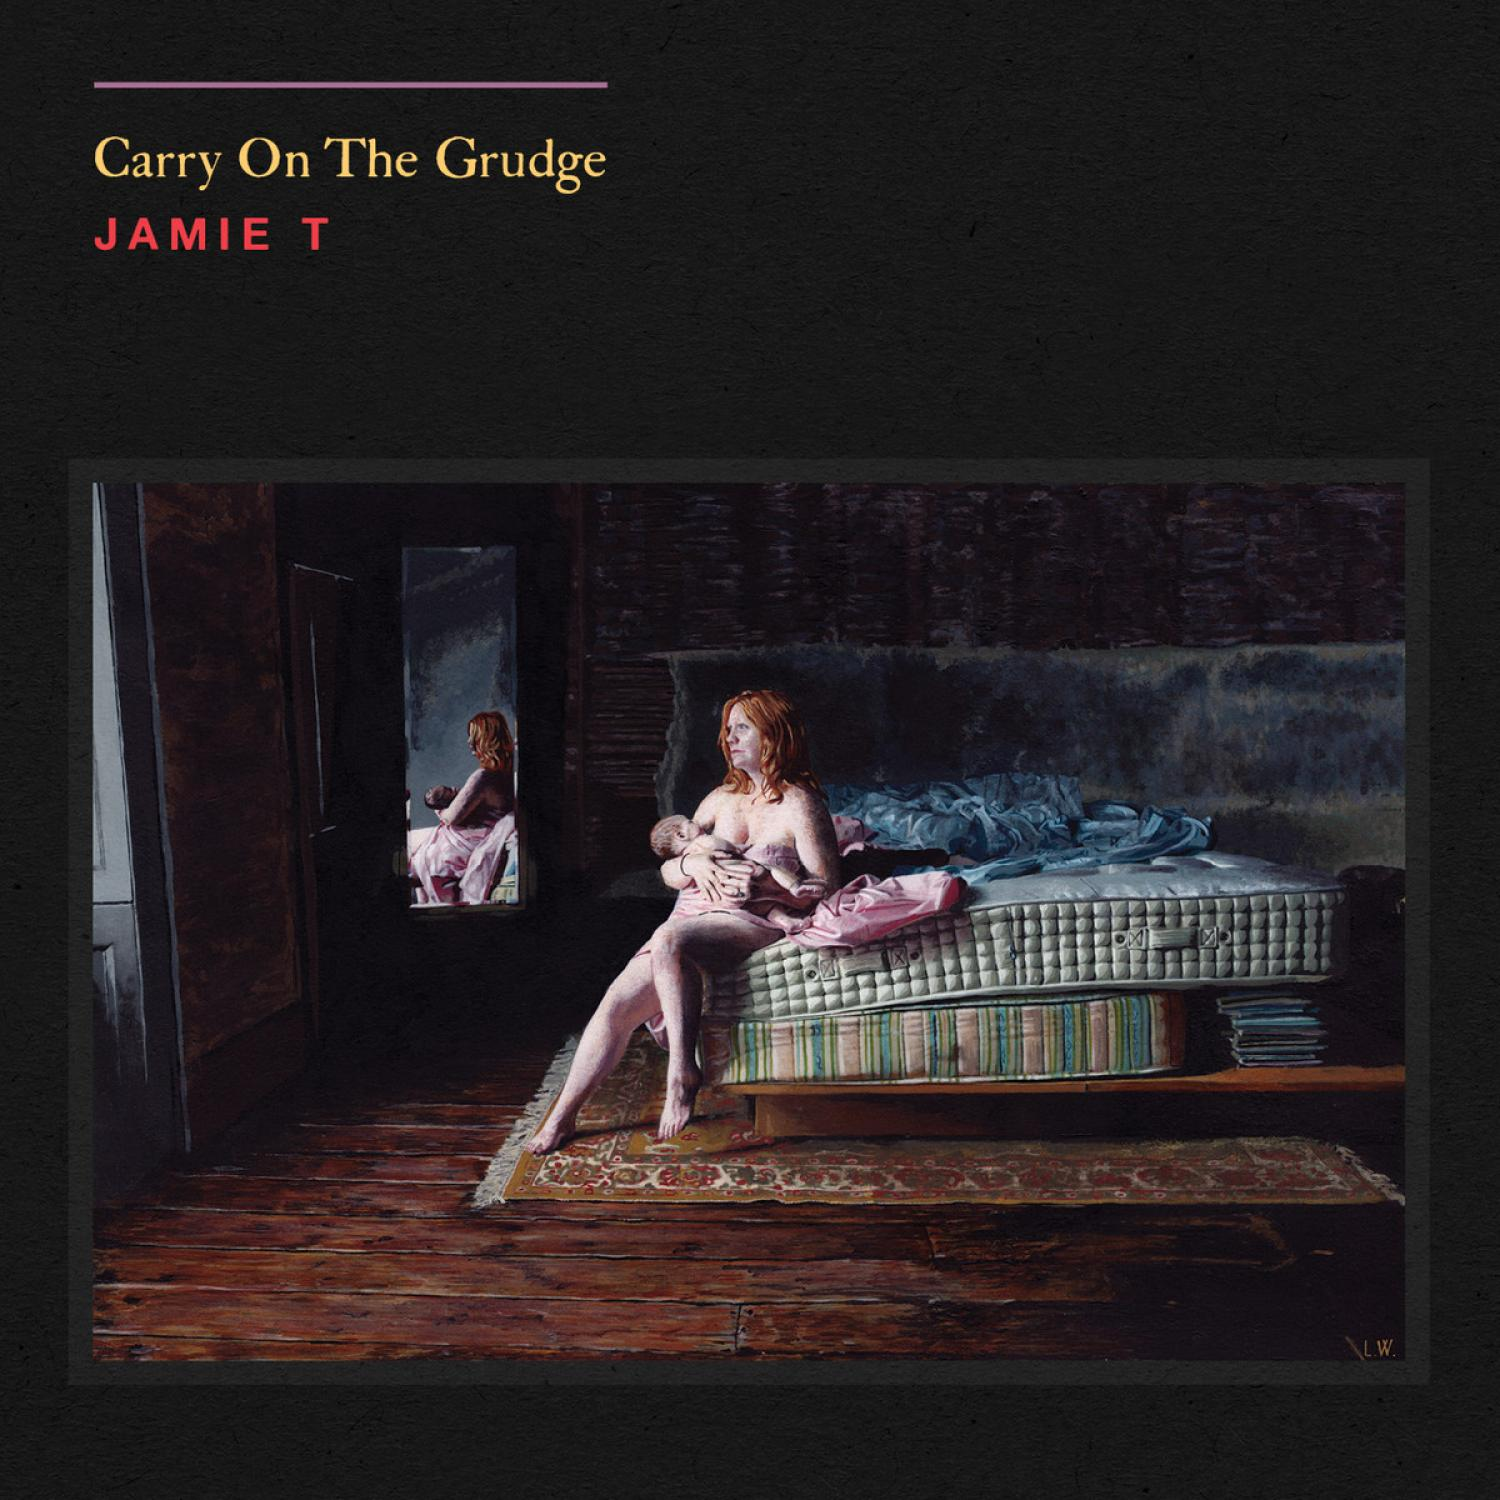 Jamie T album Carry On The Grudge